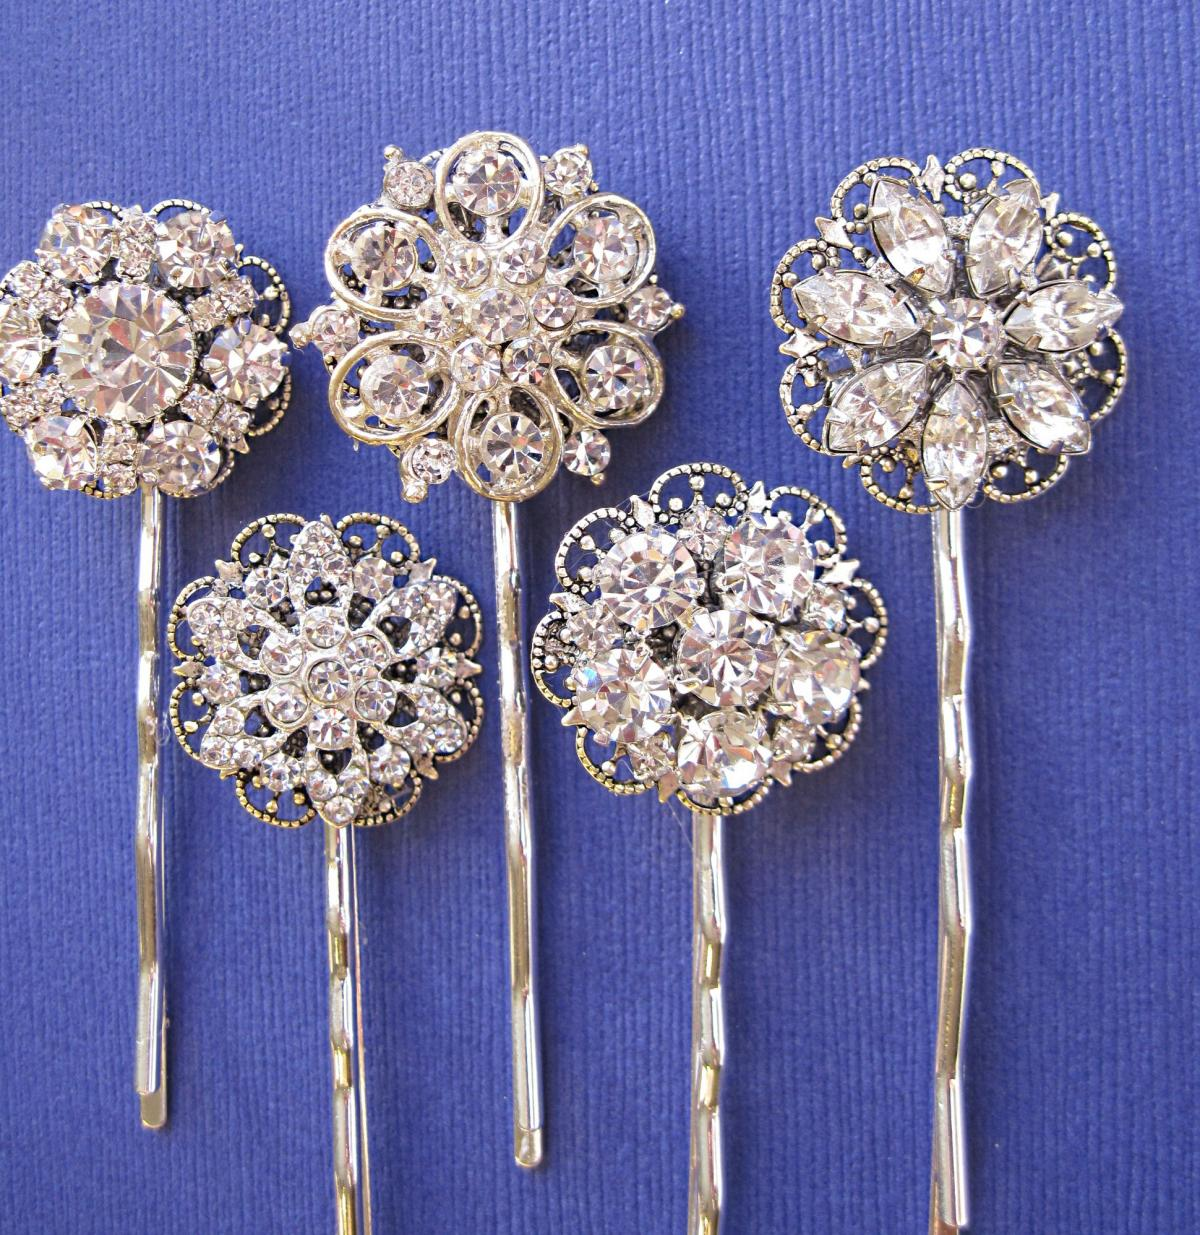 Wedding Accessories, Hair Pins, 5 Hair Pins, Rhinestone hair accessories, Hair Pins, Bobby Pins, U pins